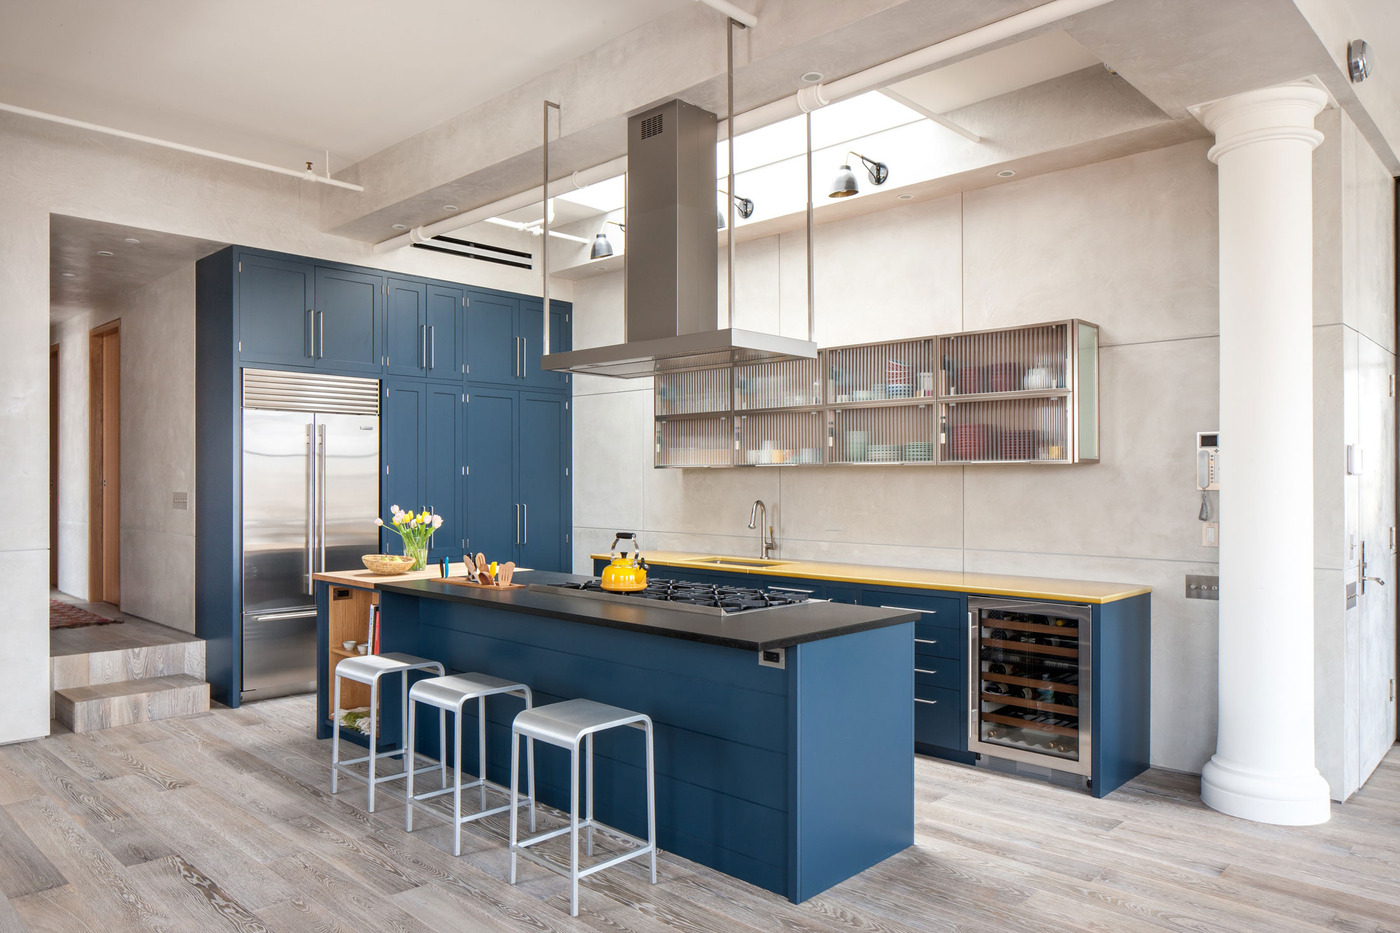 View in gallery dark blue kitchen on light color floors 1 thumb 630xauto 54618 Royal Blue Kitchen on Light & Royal Blue Kitchen on Light Color Floors is a Modern Contemporary Dream